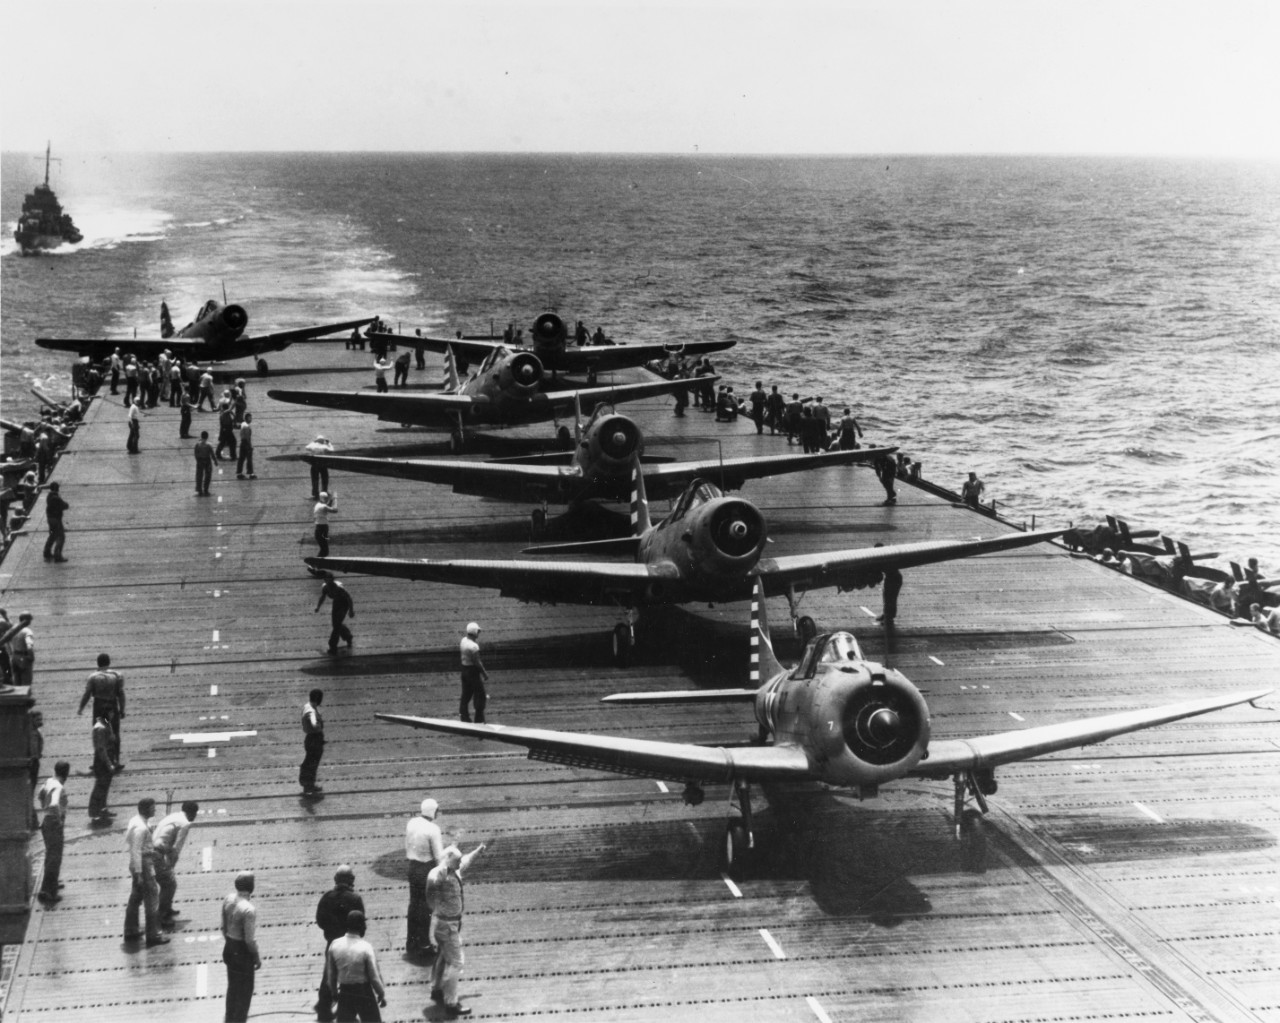 An SBD Dauntless and five TBD-1 Devastators of VT-6 prepare to take off from the ship as she steams southward through a calm sea, 4 May 1942. The launching officer signals the pilots by hand (lower left). (U.S. Navy Photograph 80-G-10151, National Archives and Records Administration, Still Pictures Branch, College Park, Md.)